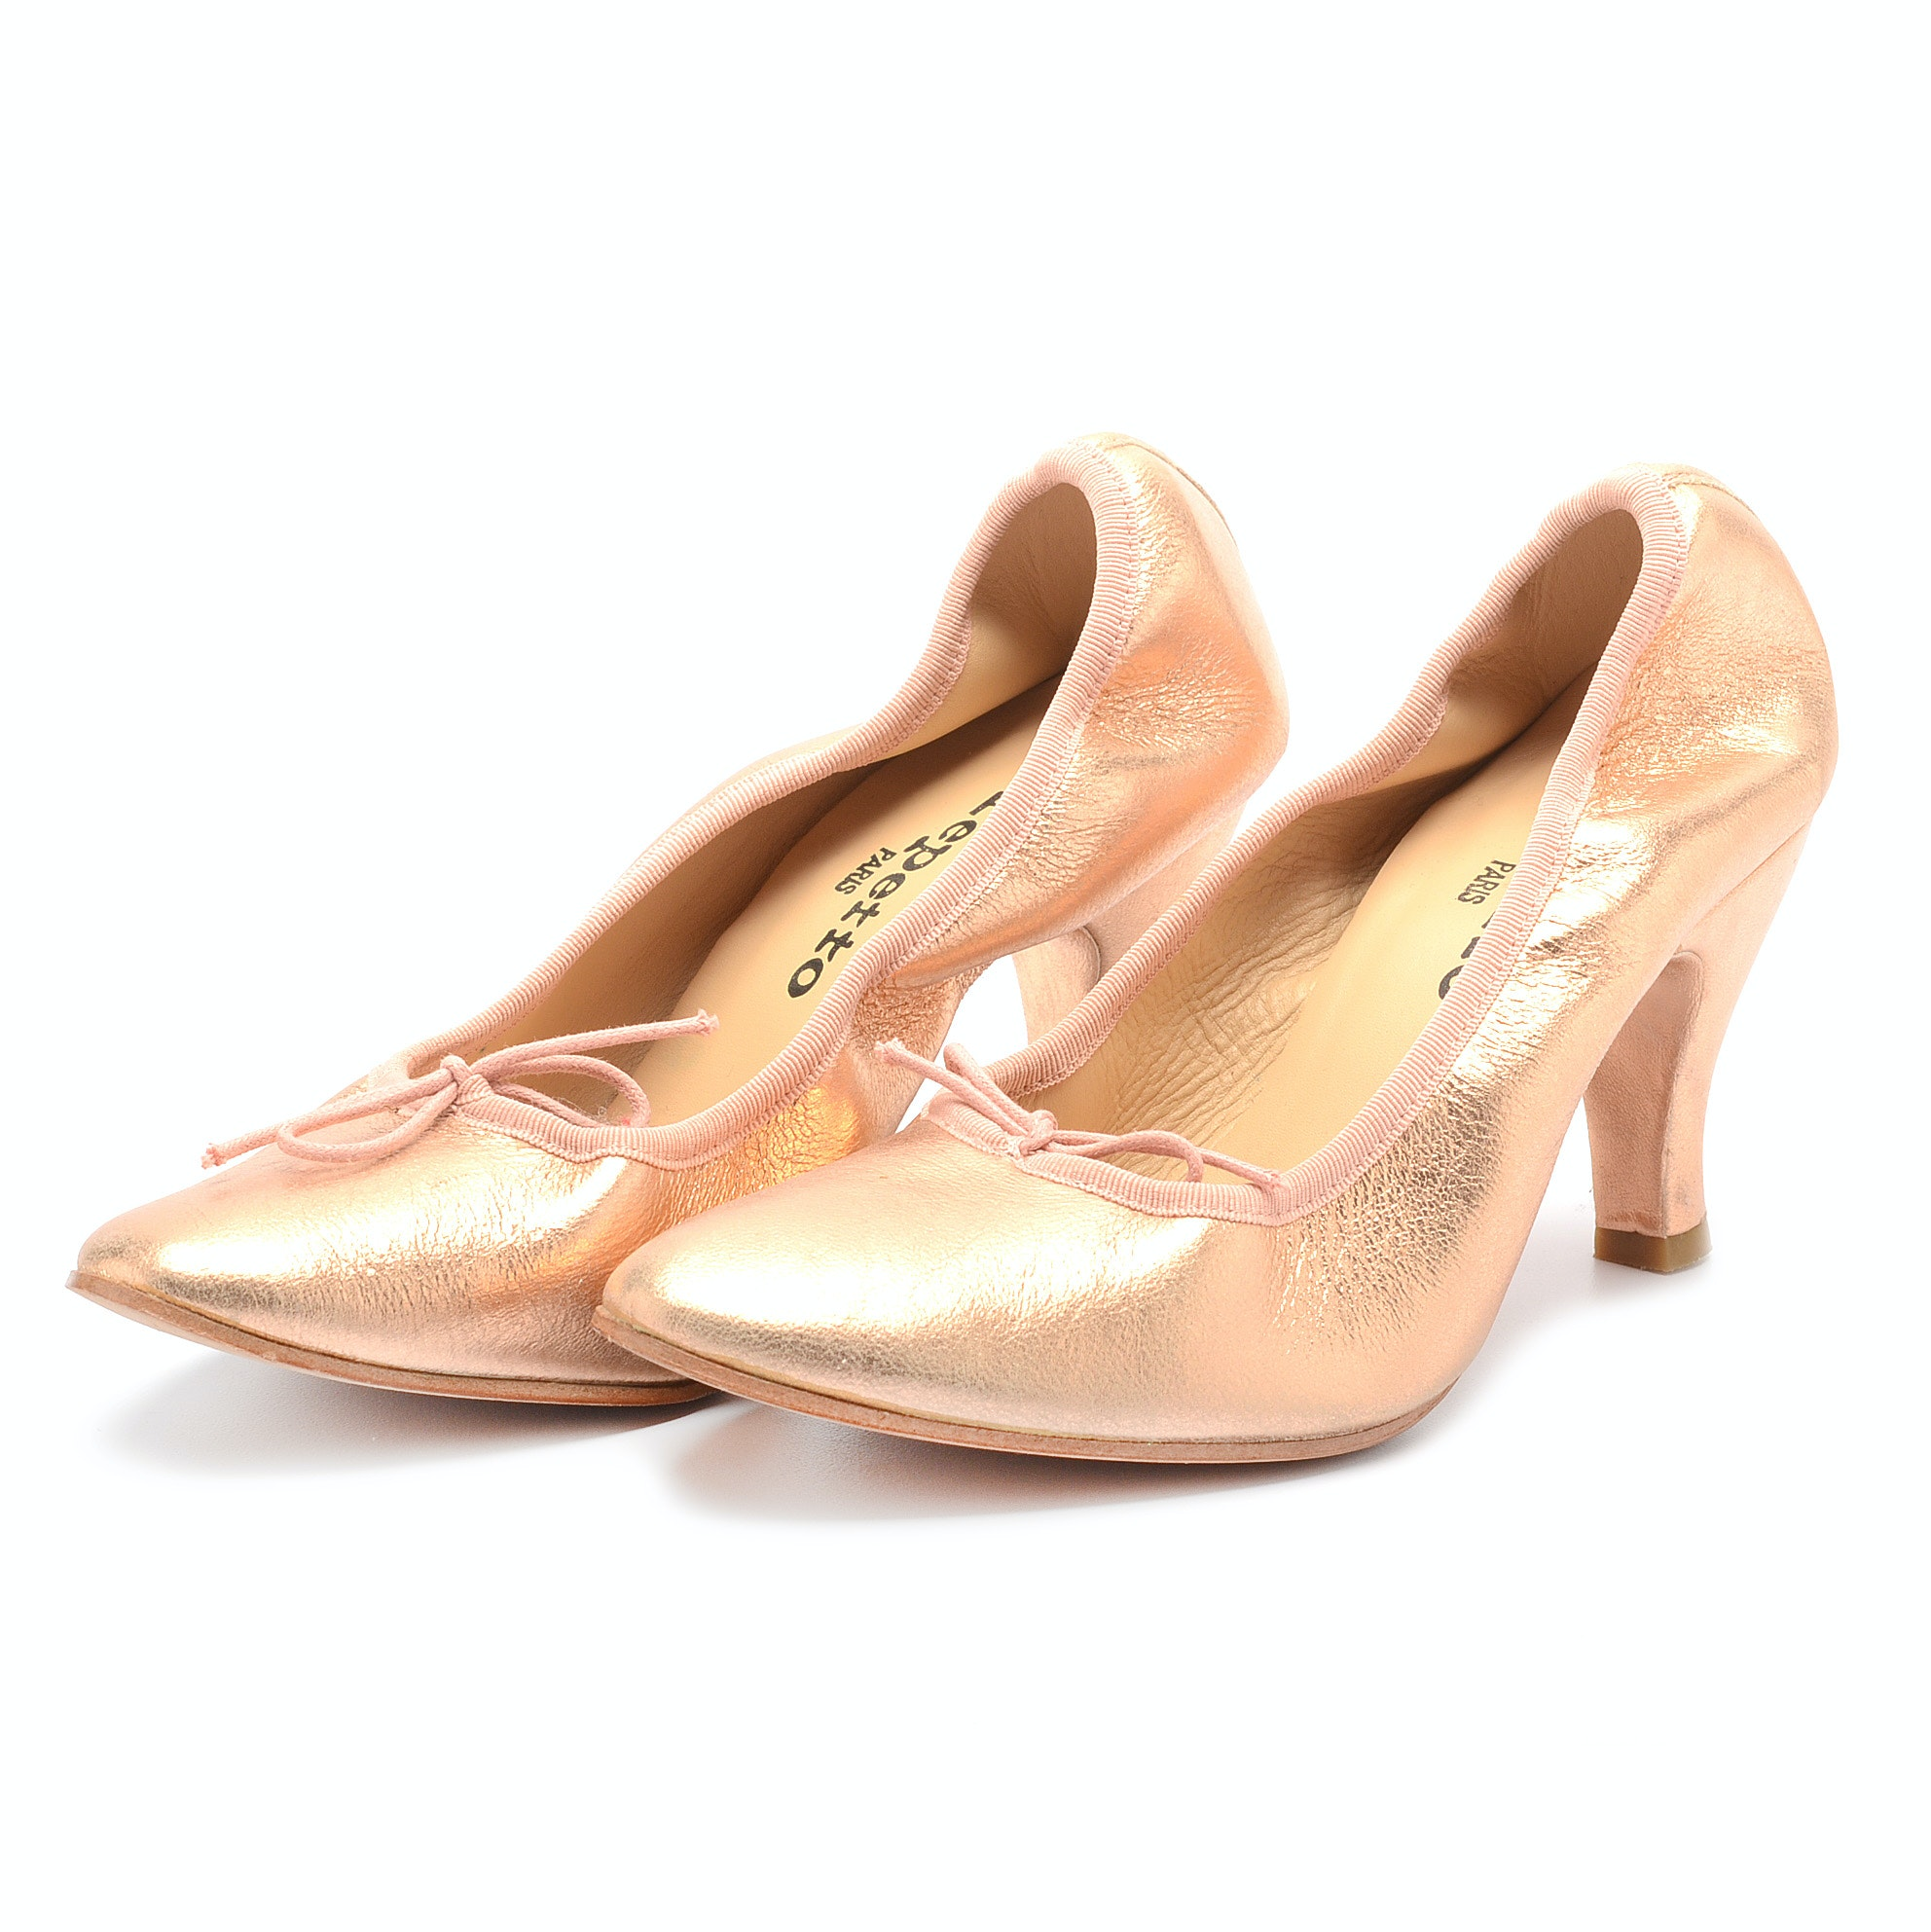 Repetto of Paris Patent Leather Heels